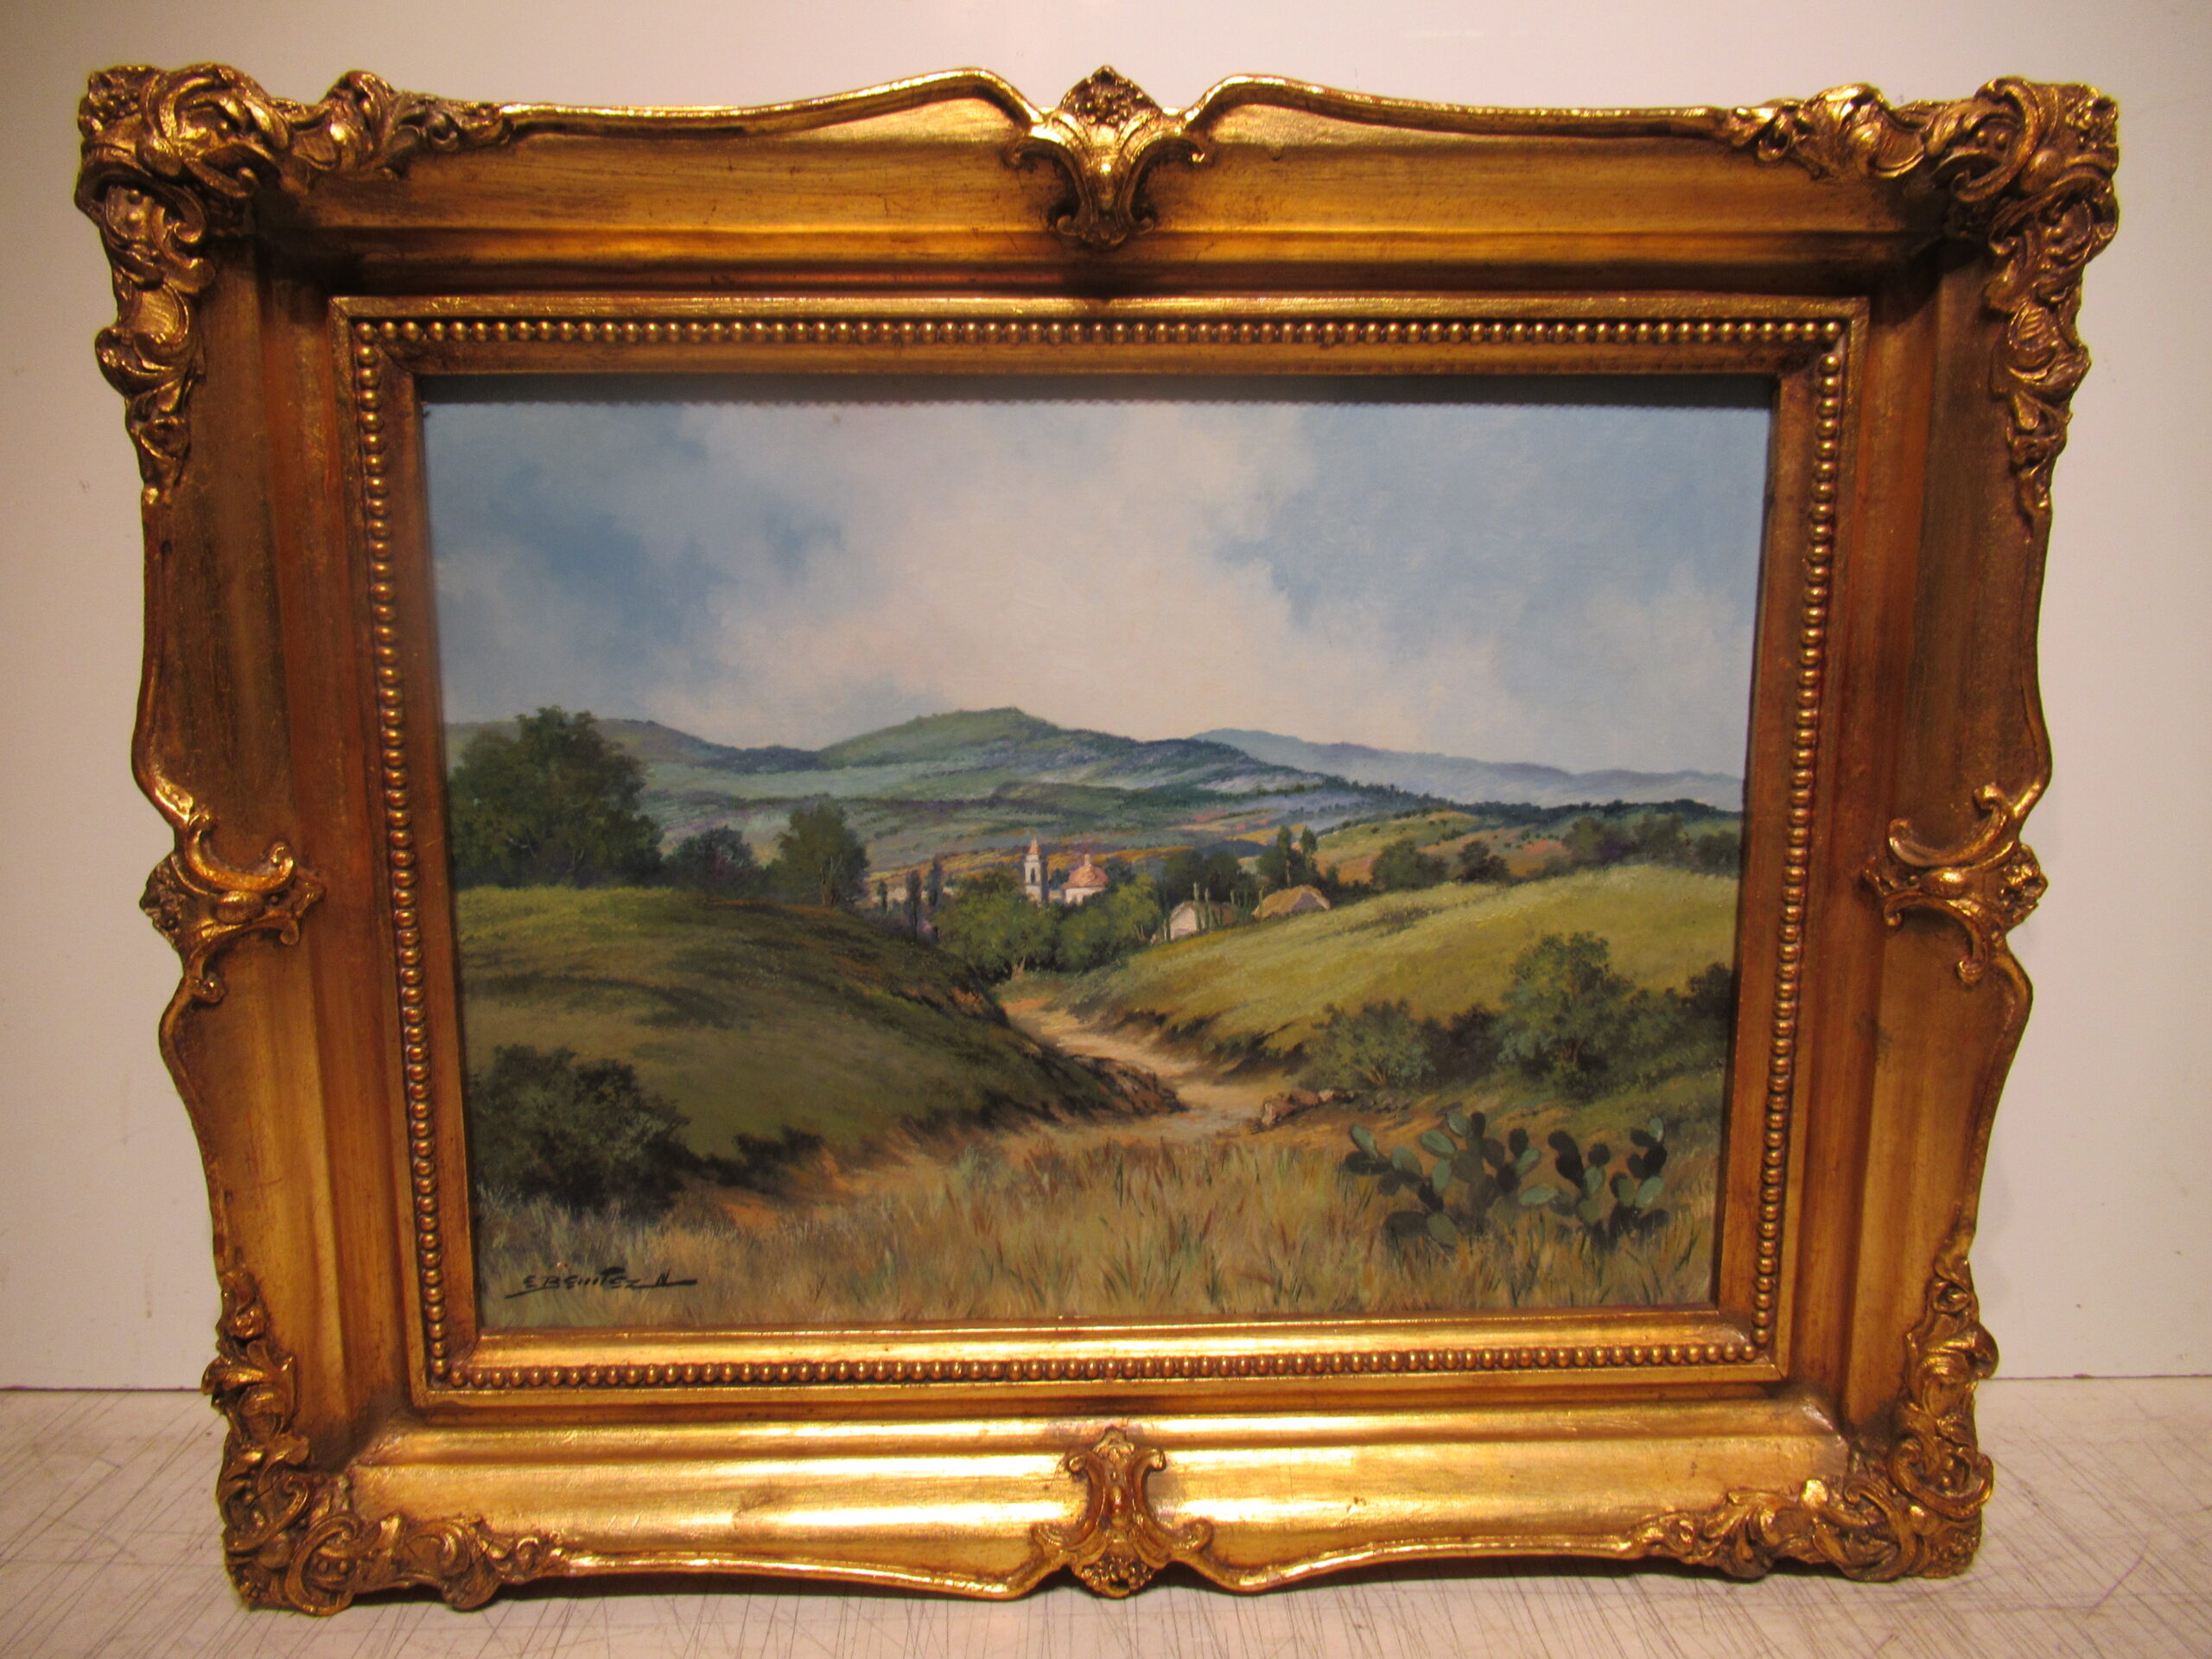 12×16 Enrique Binitez 1960 Landscape Oil Painting